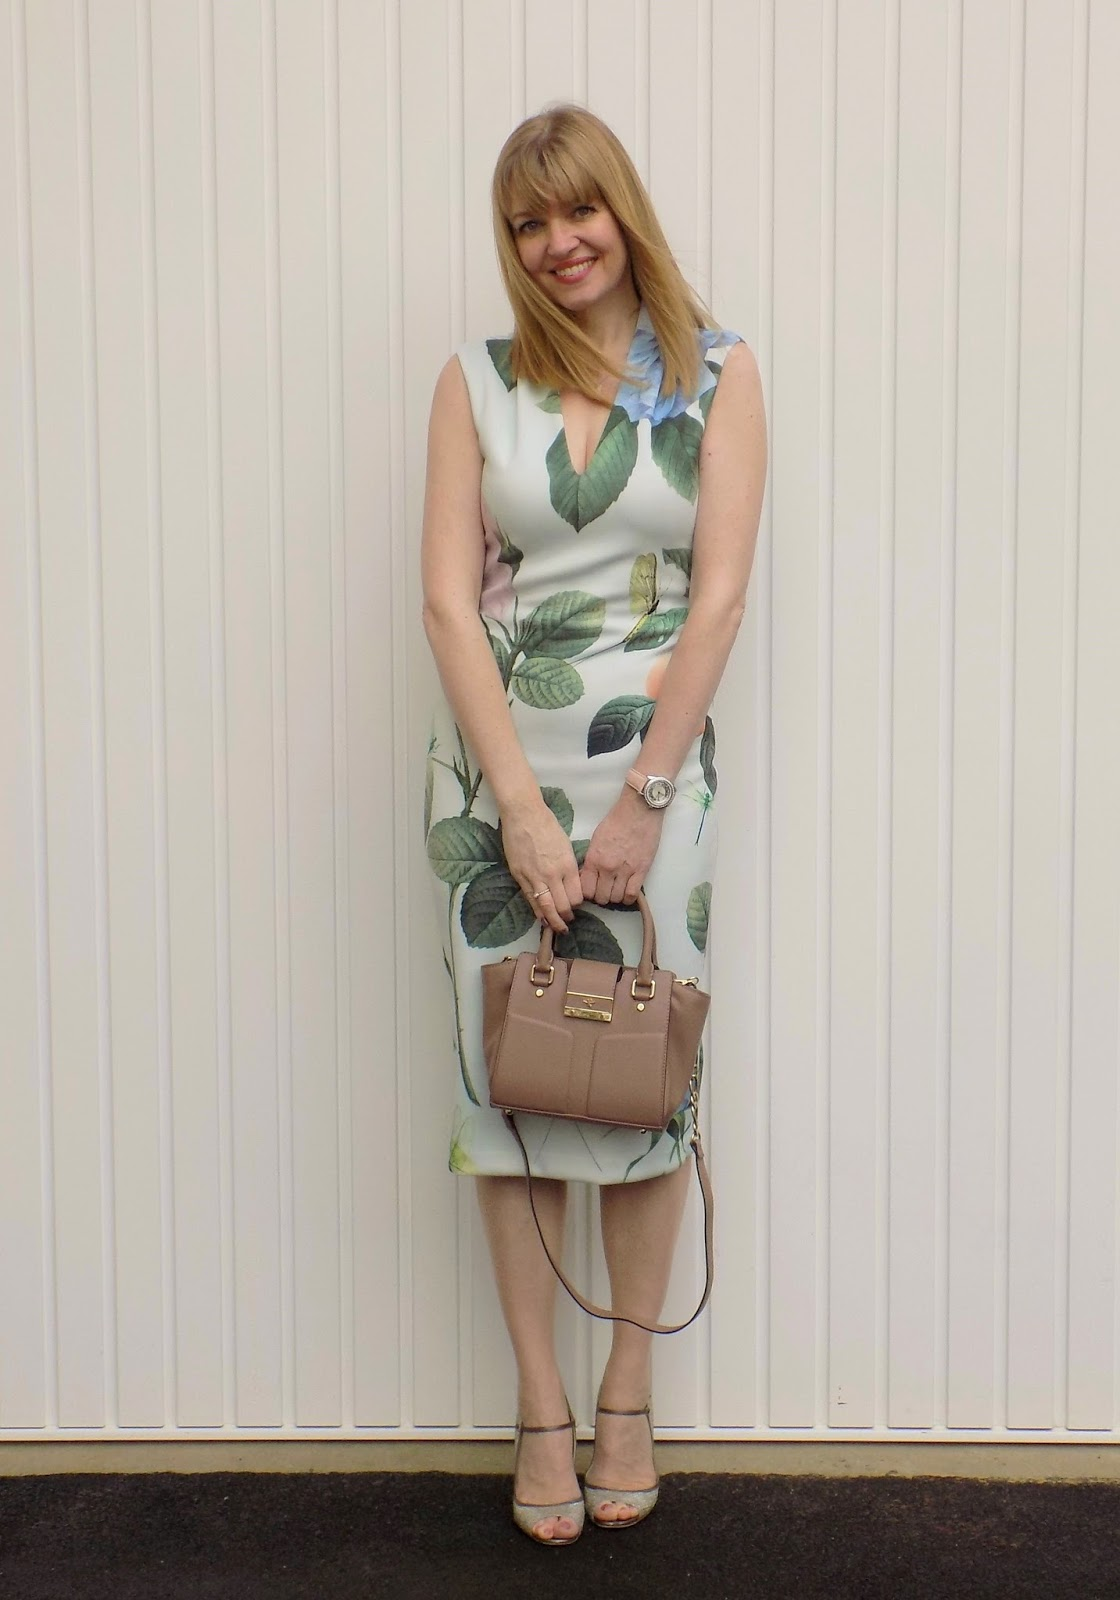 Ted Baker midi dress and Jimmy Choos